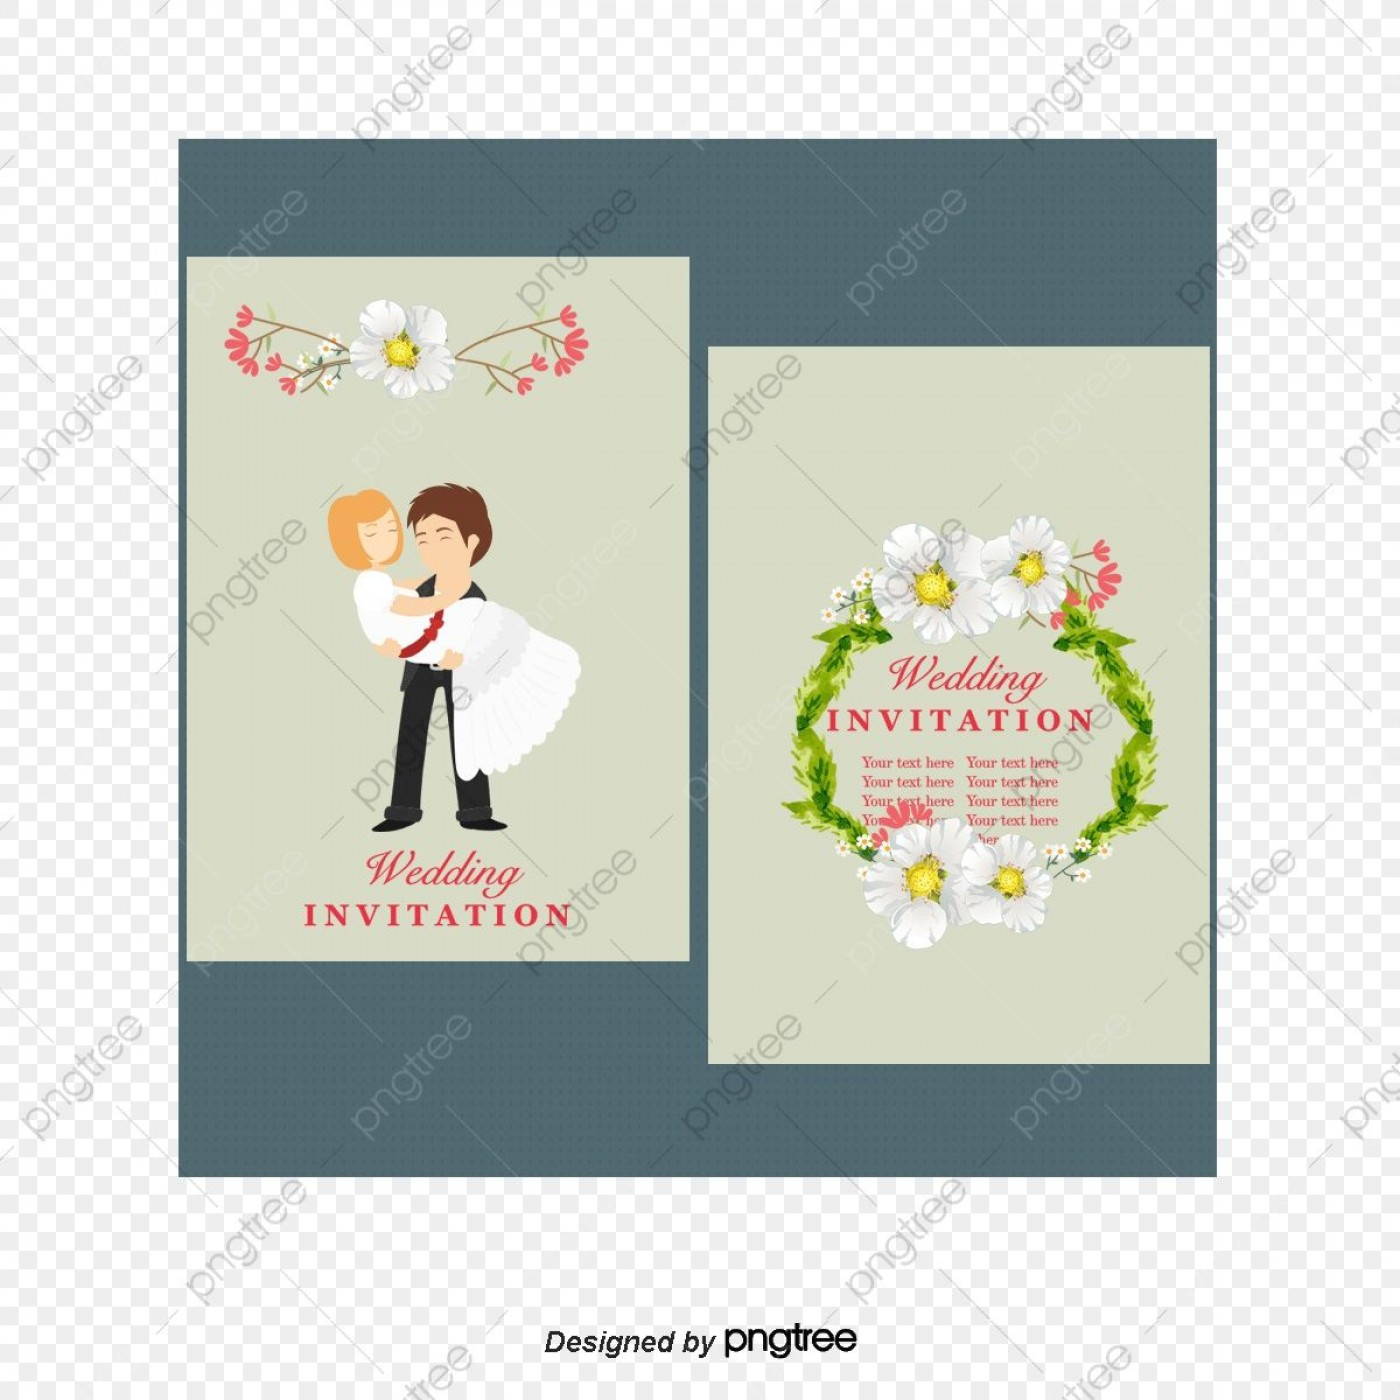 008 Archaicawful Download Free Wedding Invitation Card Template High Definition  Marriage Format Psd1400